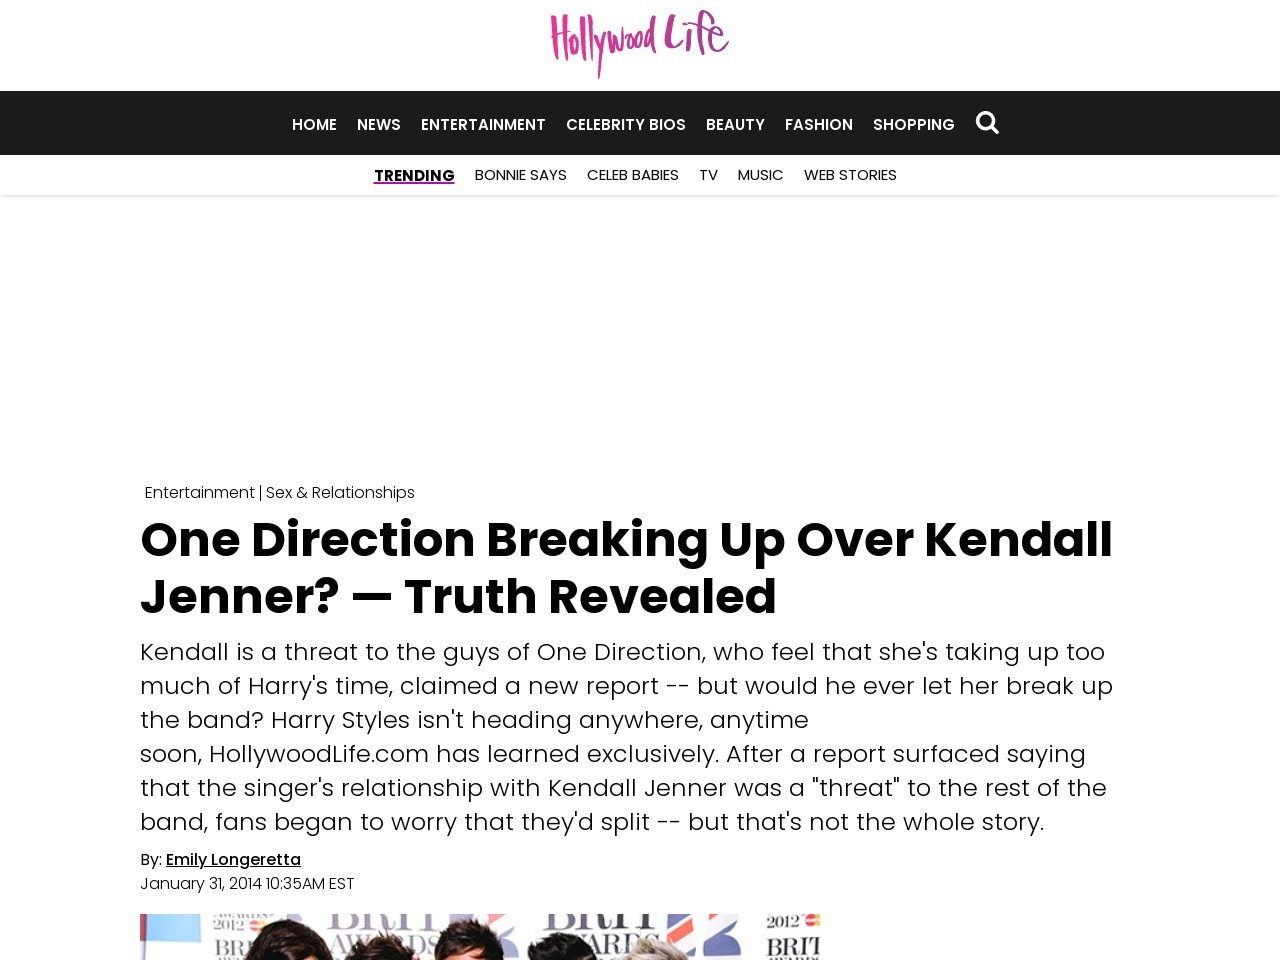 One Direction Breaking Up Over Kendall Jenner? — Harry Styles …